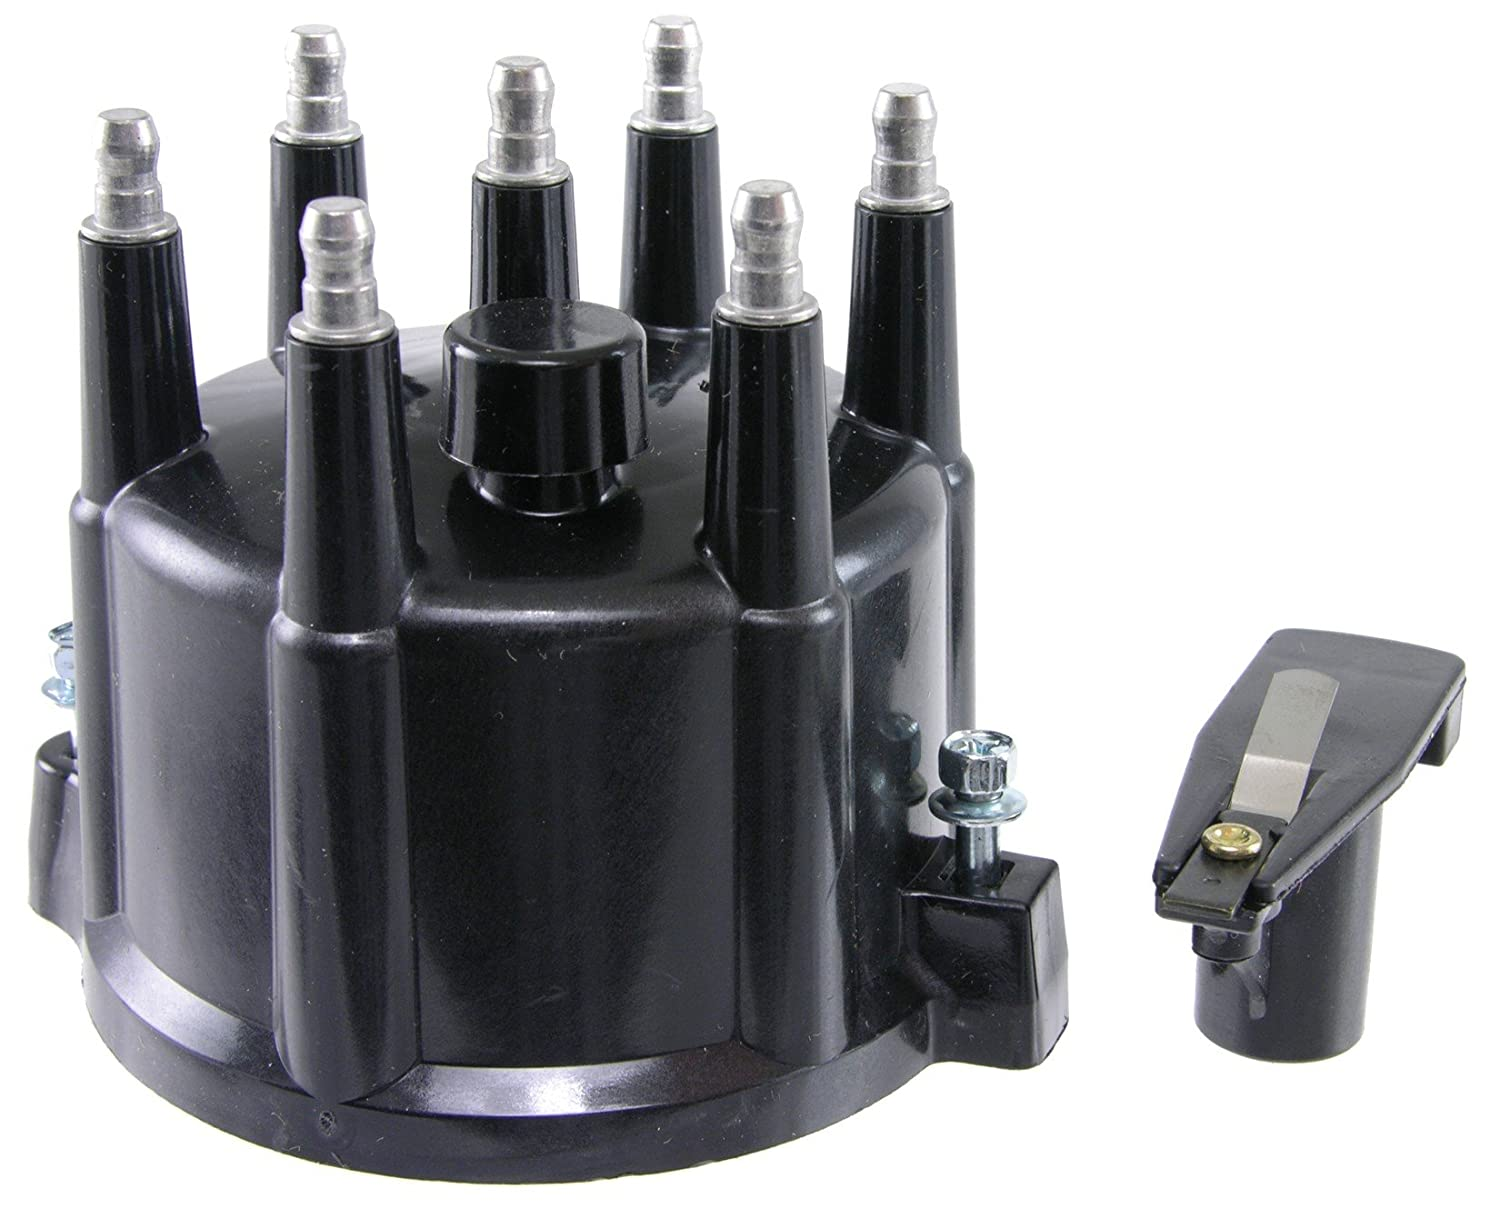 Wells F2129 Distributor Cap and Rotor Kit